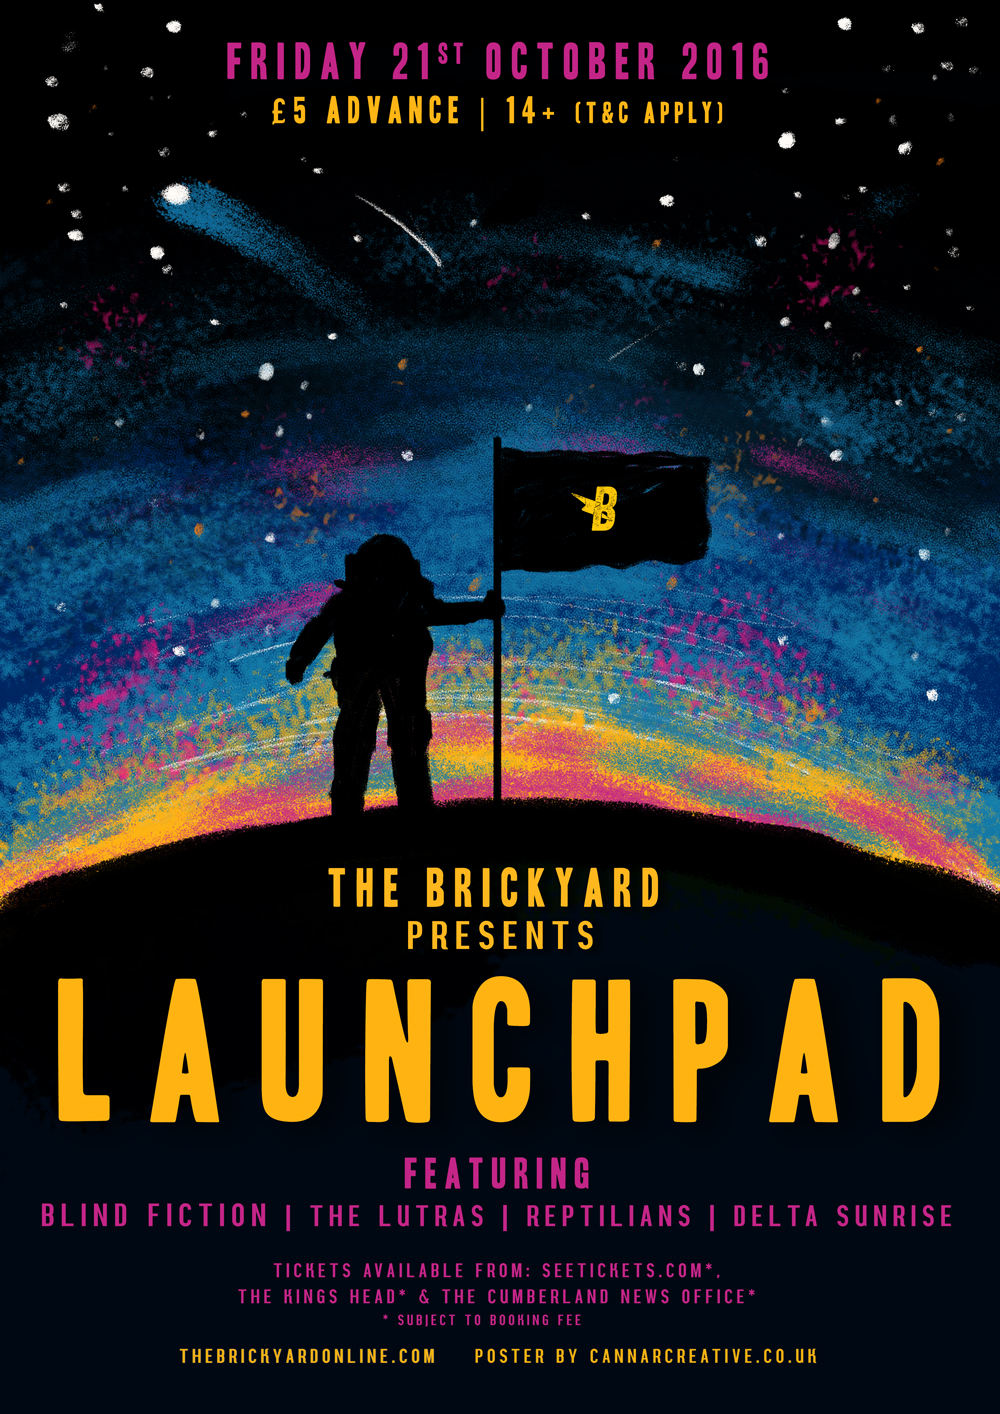 Launchpad at The Brickyard Space Illustration by Chelsea Cannar